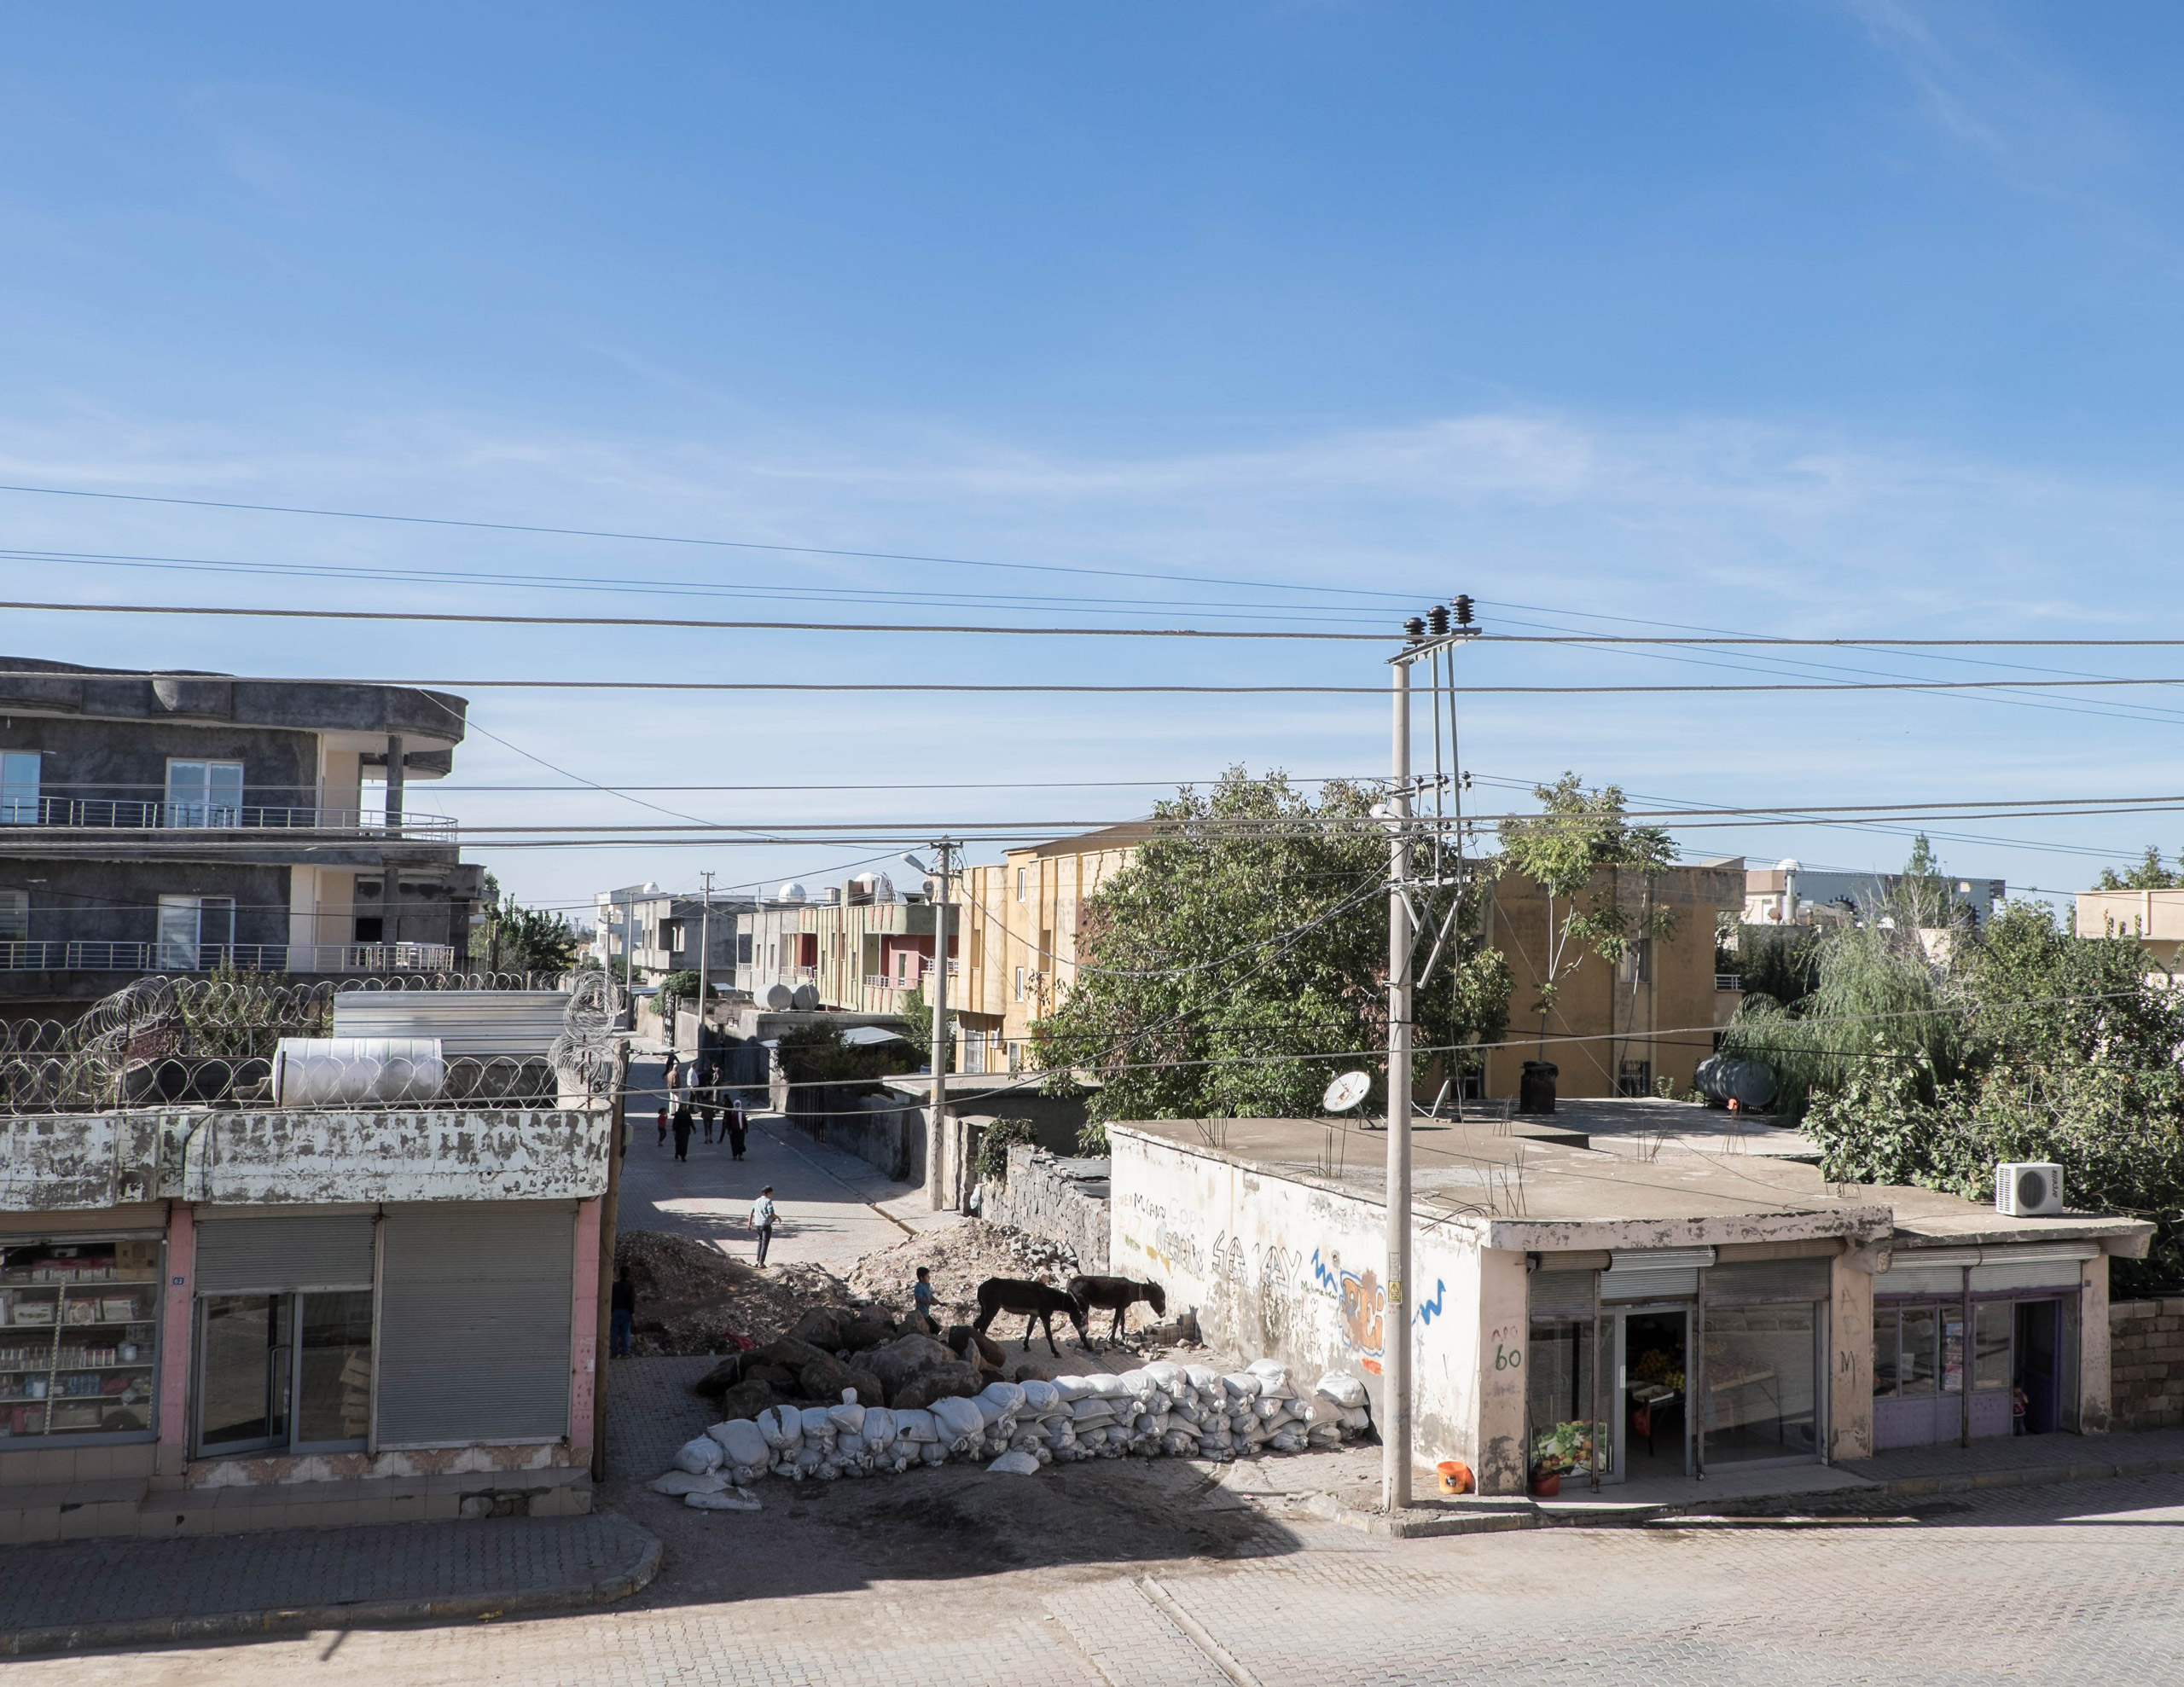 Barricades at an entrance to Turgut Ozal, a self declared autonomous neighborhood of Idil, on Oct. 30, 2015. Since July, several neighborhoods in the town have declared autonomy and self-rule, and groups of young Kurds have taken up arms and raised barricades to prevent the advances of the Turkish forces.